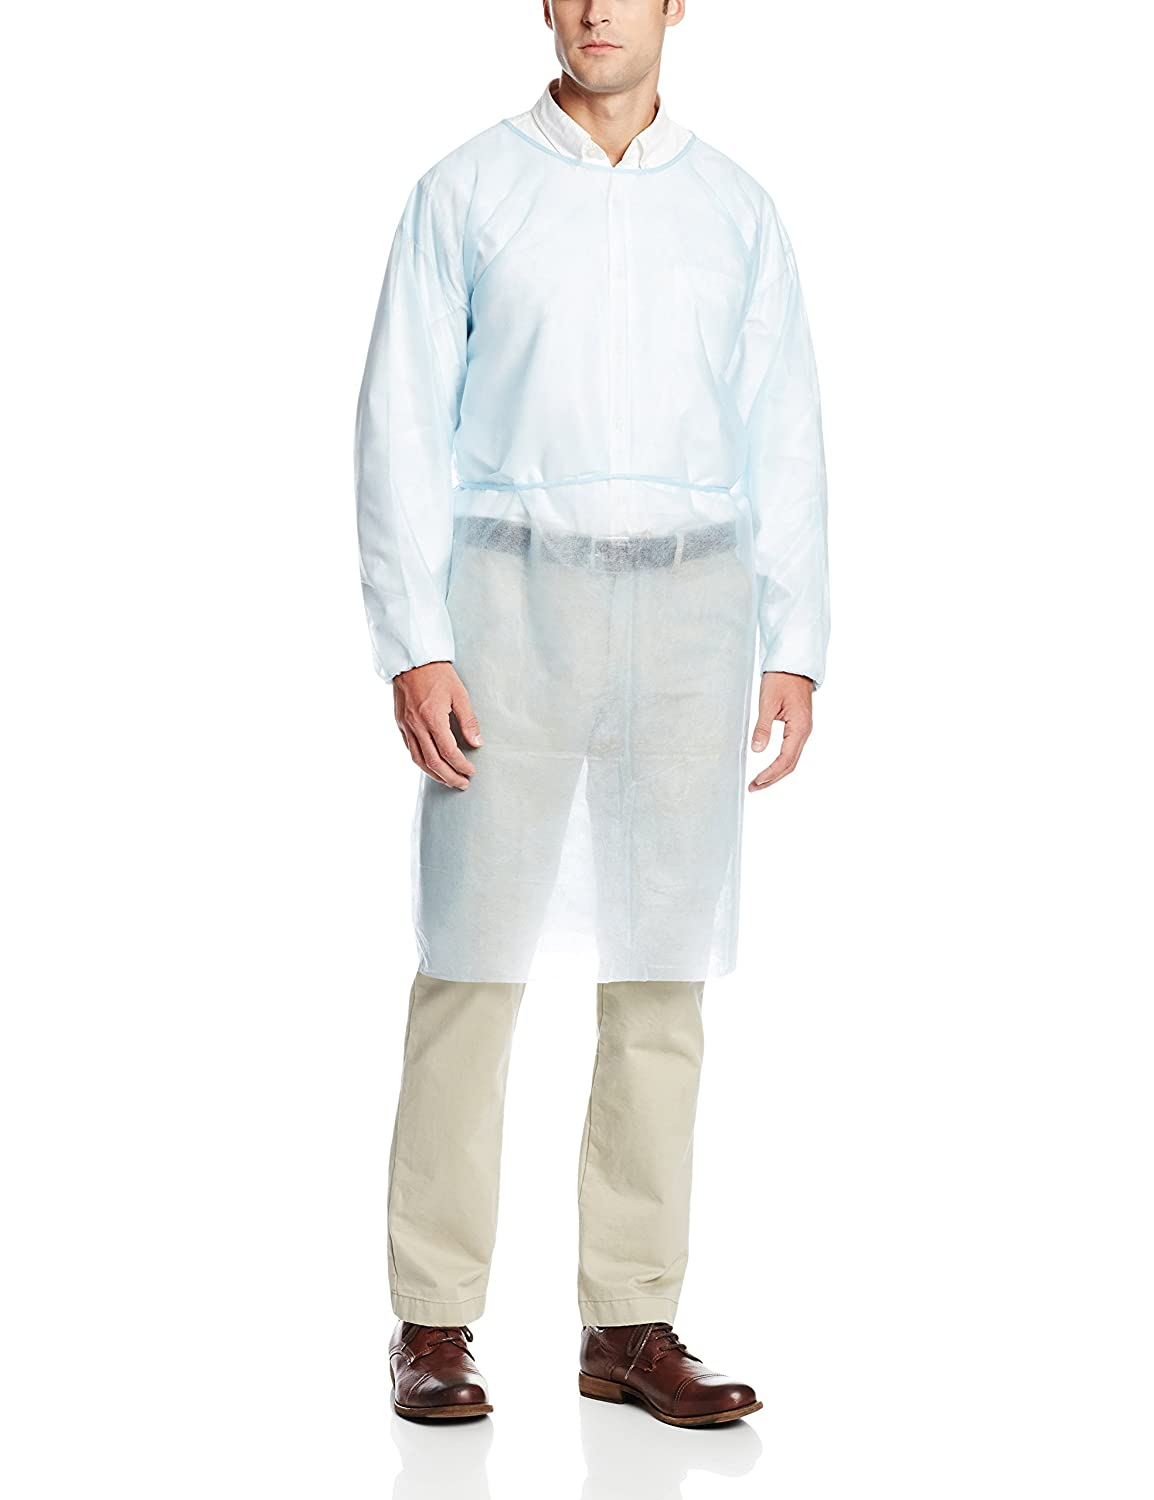 Protective Isolation Gown Clothing Overalls Isolation Suit Disposable Antistatic Dust Anti-virus Medical Splash Resistant